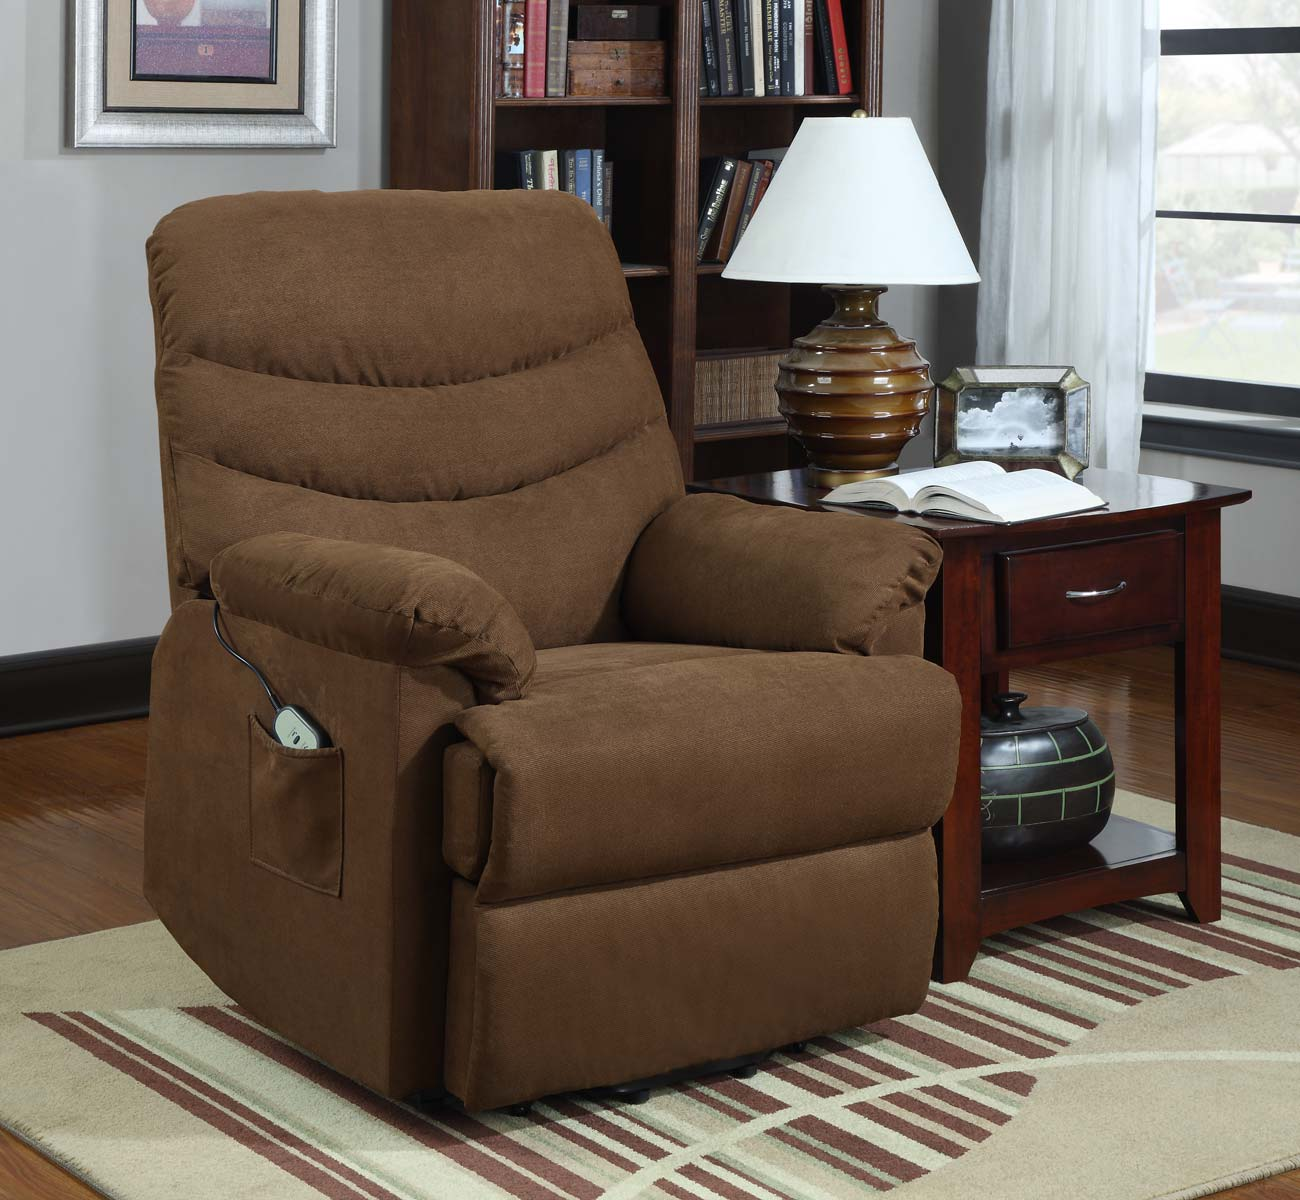 brown power Lift Recliners with pocket on wooden floor plus carpet and wooden table with table standing lamp for living room decor ideas